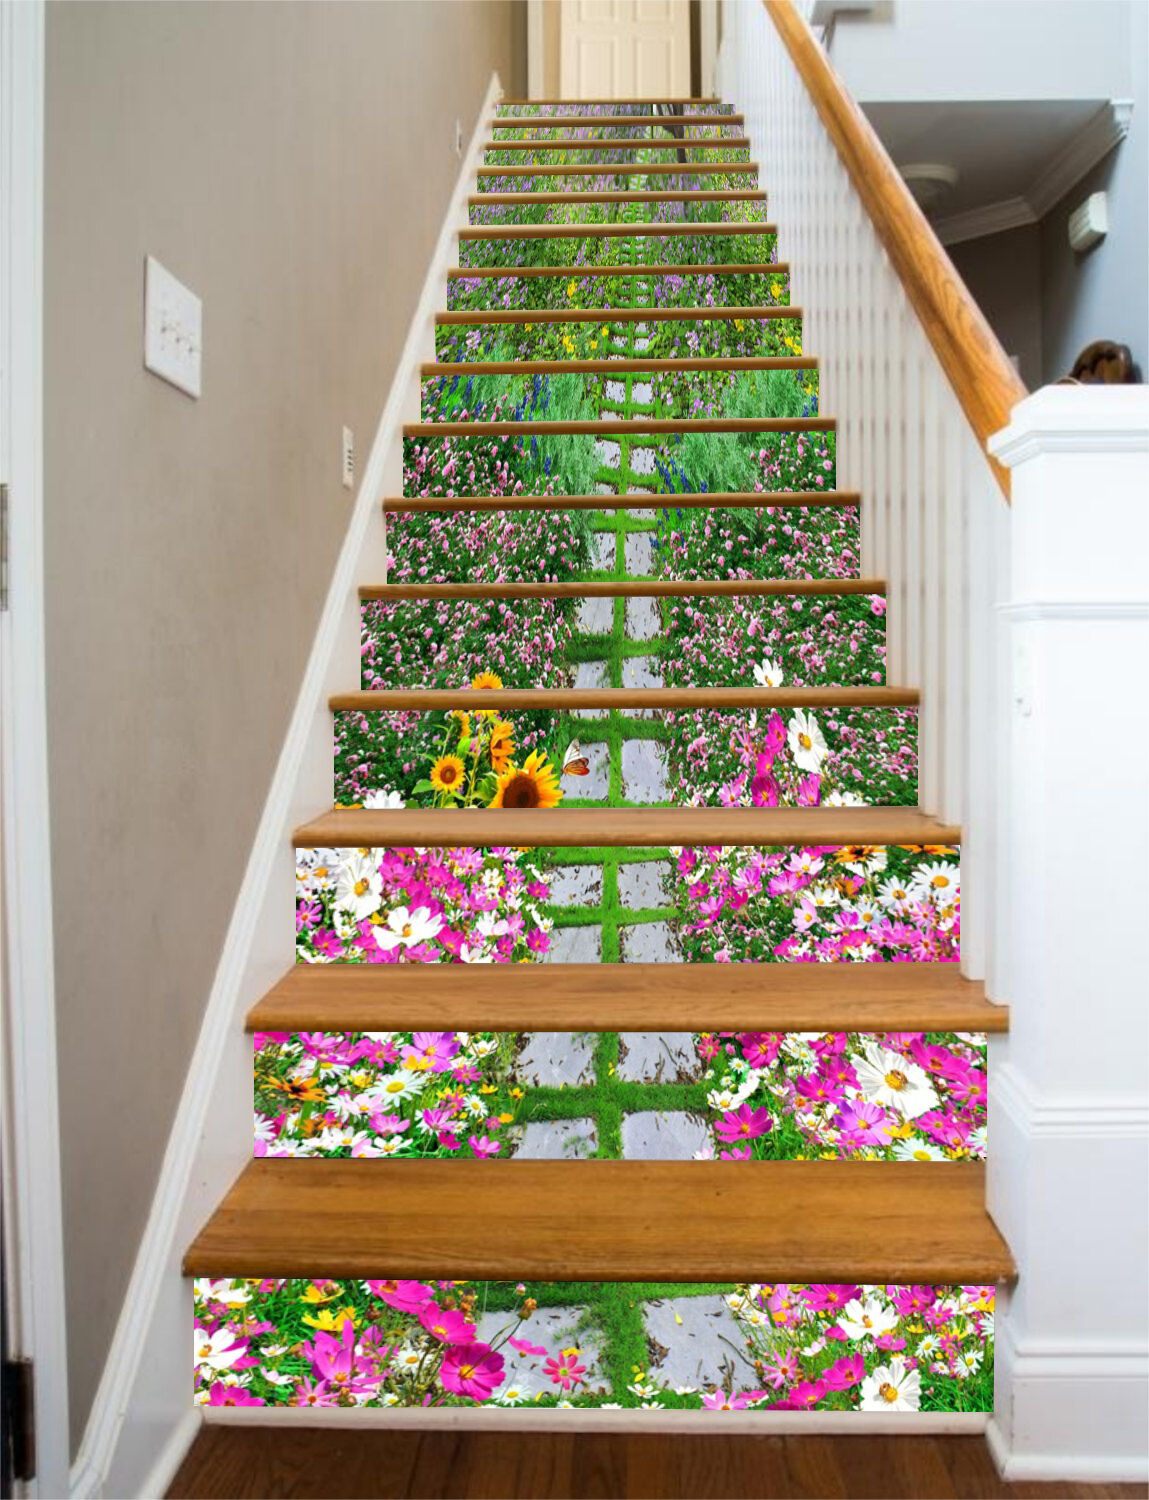 3D Stone flower 262 Stair Risers Decoration Photo Mural Vinyl Decal Wallpaper UK